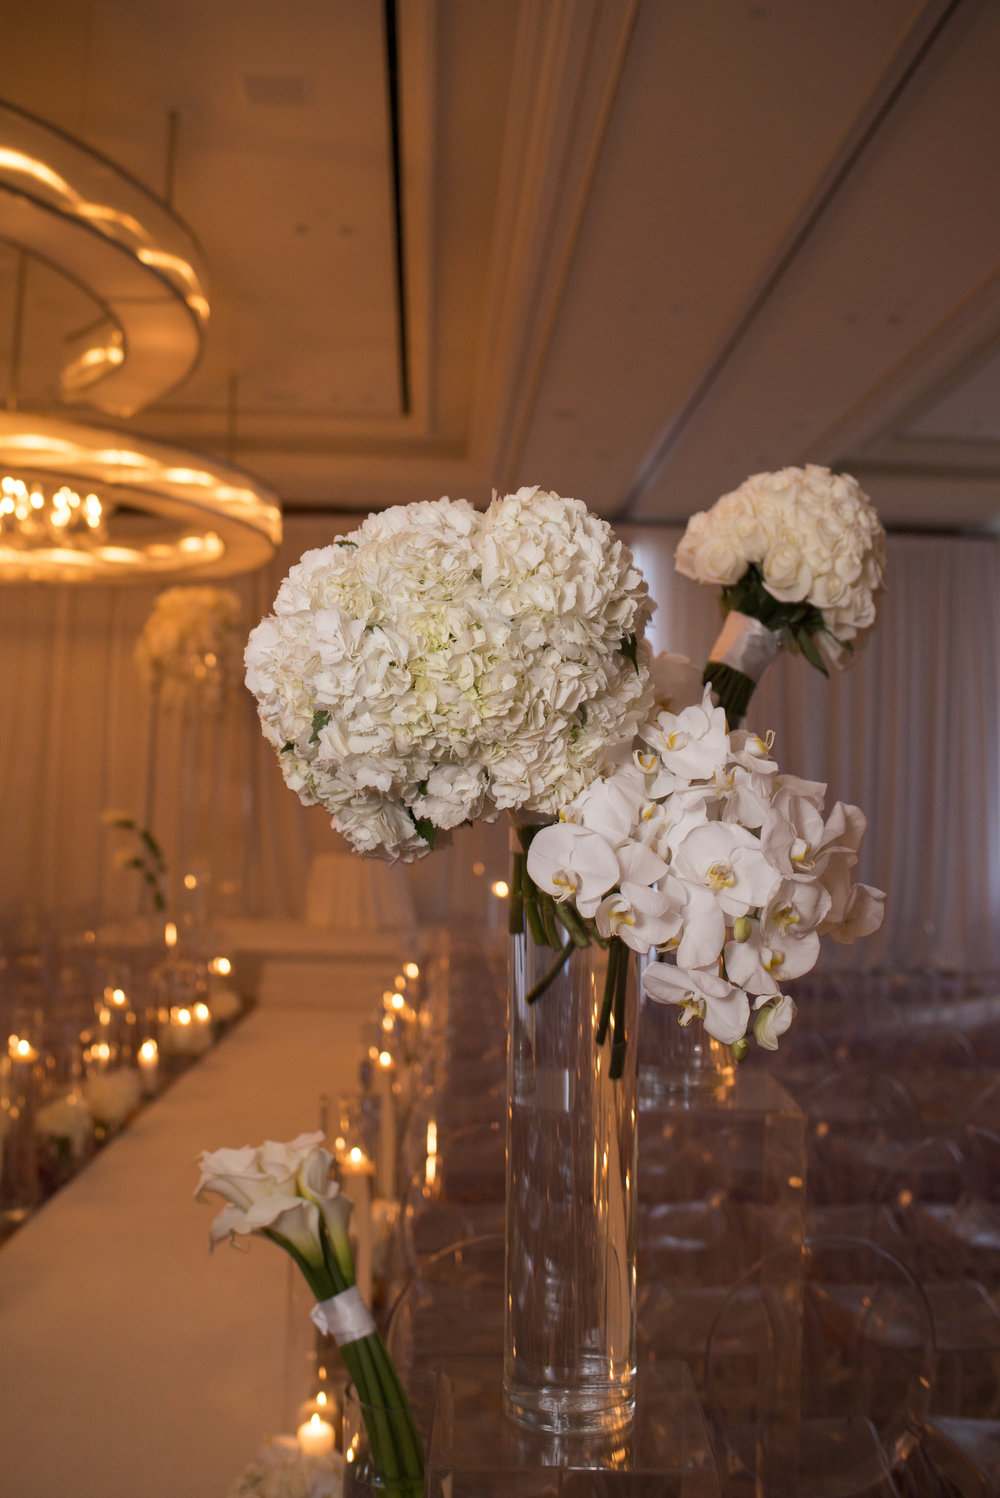 ivory wedding at the mandarin oriental.  WEDDING PLANNING & EVENT DESIGN •  Andrea Eppolito Events , PHOTOGRAPHY •  AltF Photography ,  FLORAL AND DECOR DESIGN & PRODUCTION • Destinations by Design , CATERING •  Mandarin Oriental Las Vegas , COCKTAILS •  The Grand Bevy , WEDDING GOWN •  Galia Lahav ,  SHOES •  Jimmy Choo